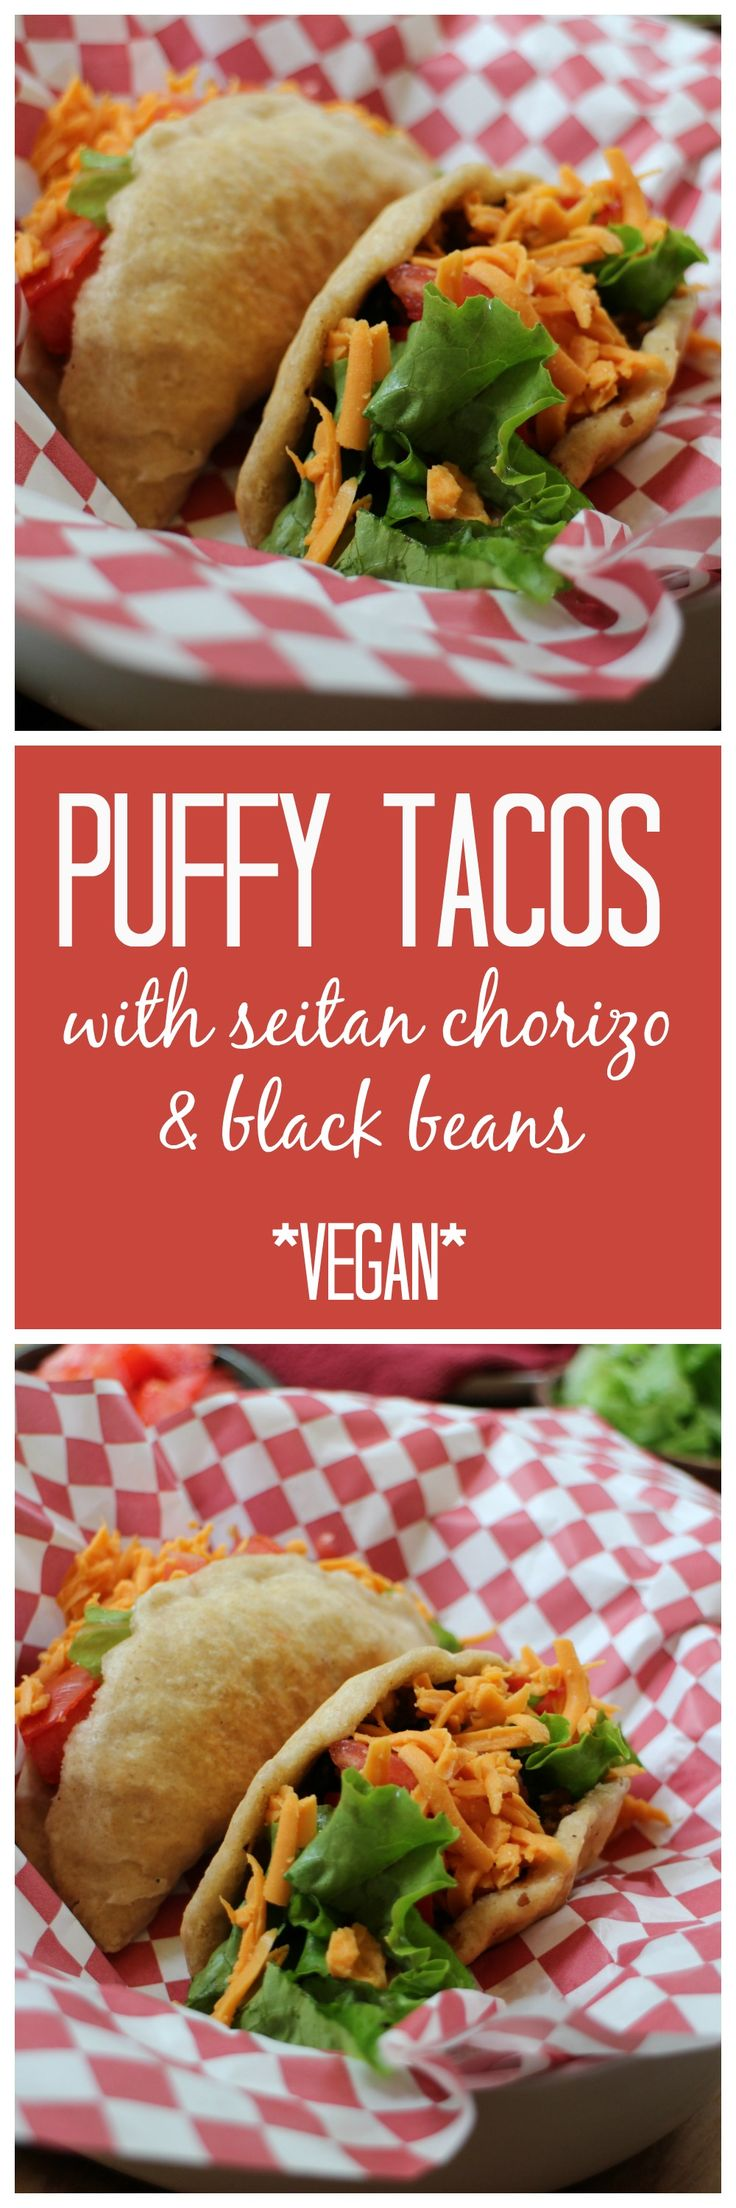 Fried puffy tacos with seitan chorizo & black beans. This crave-worthy meal was inspired by Tasty Tacos in Des Moines, Iowa. But this version is totally vegan! | cadryskitchen.com